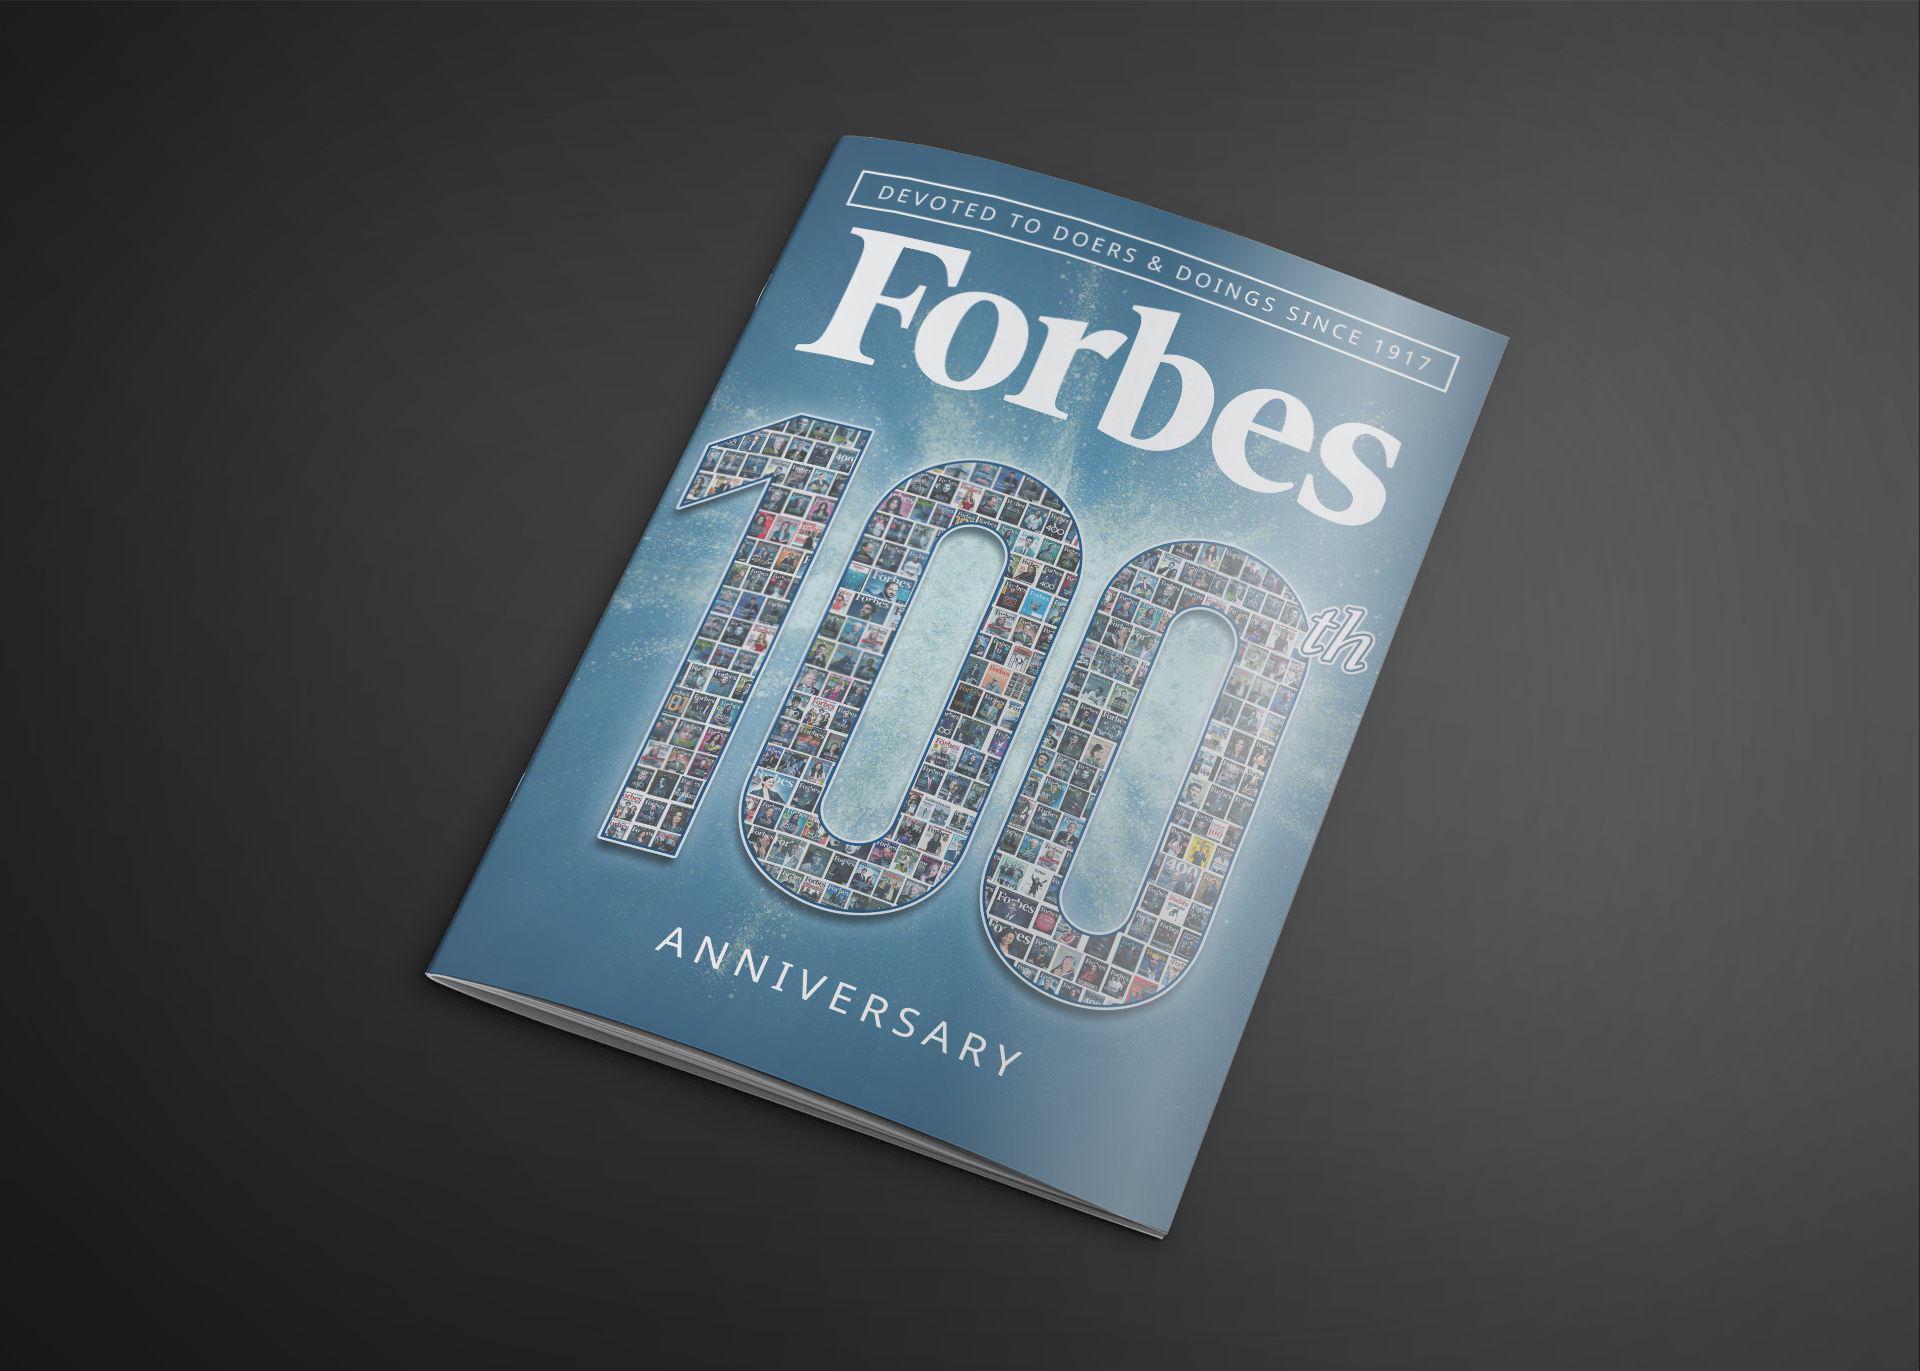 forbes-100th-cover-mockup.jpg